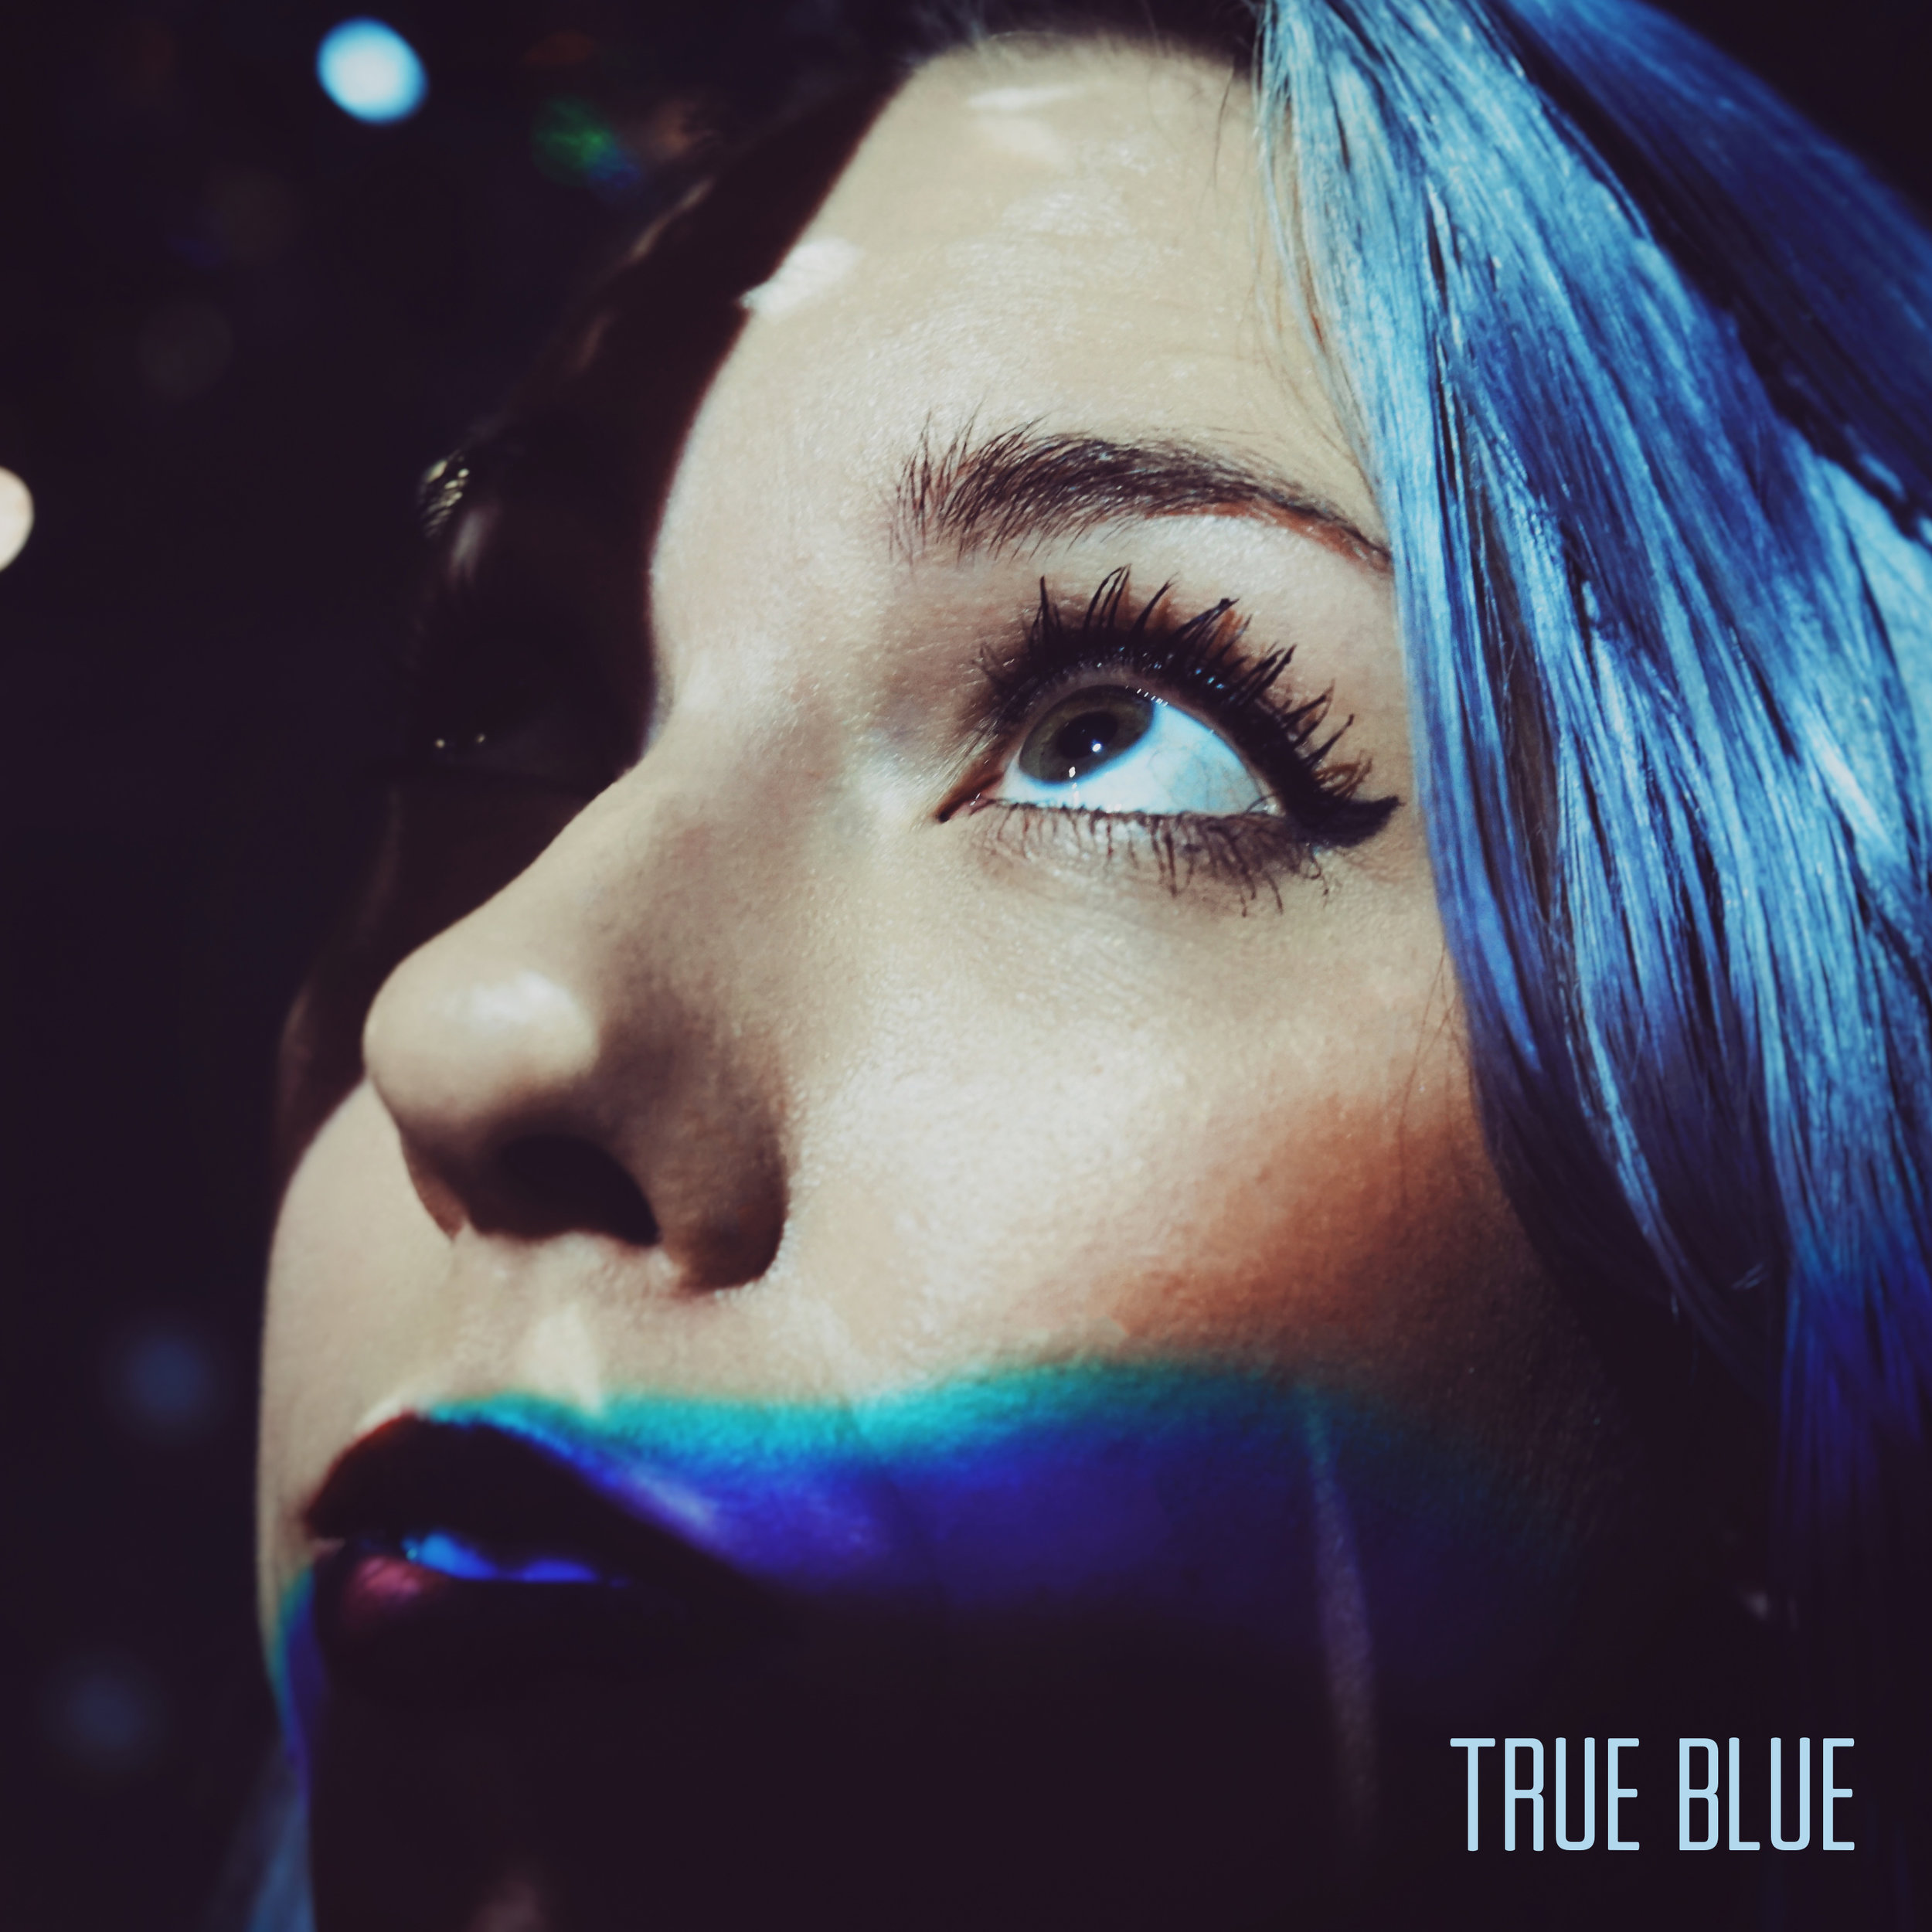 TRUE BLUE - AVAILABLE NOW